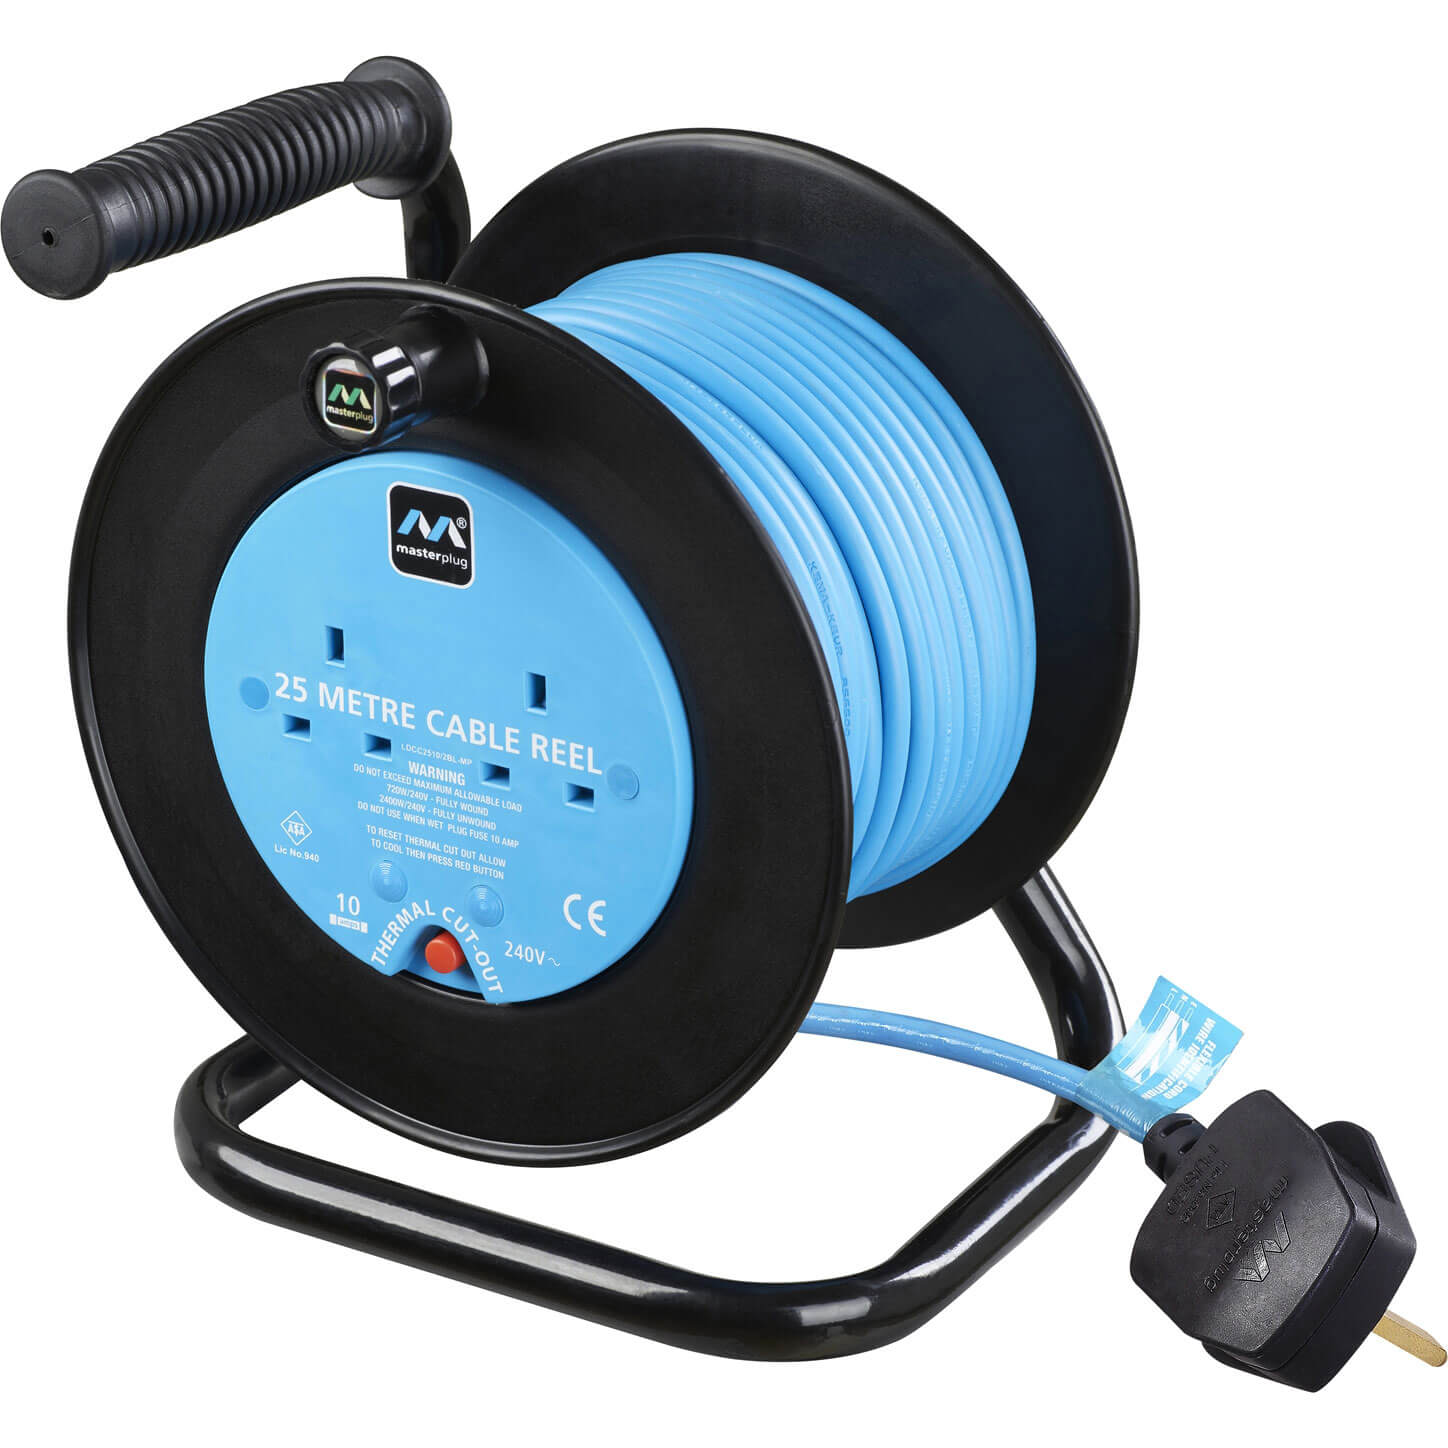 Masterplug 2 Socket 25m Cable Extension Reel 10amp 240v